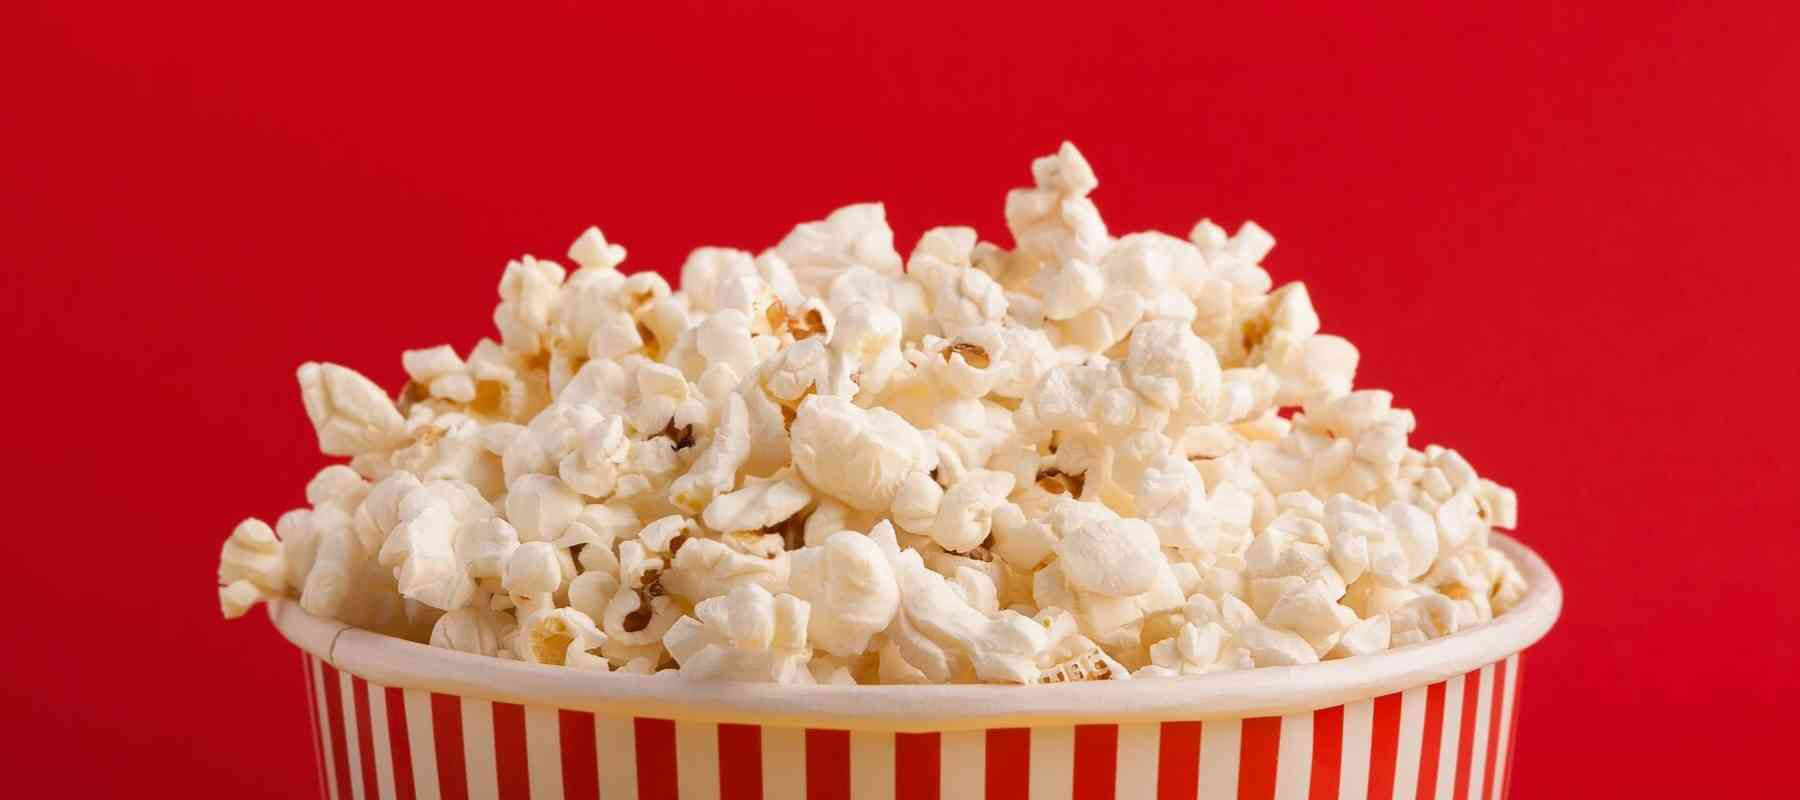 popcorn lung vaping health concerns